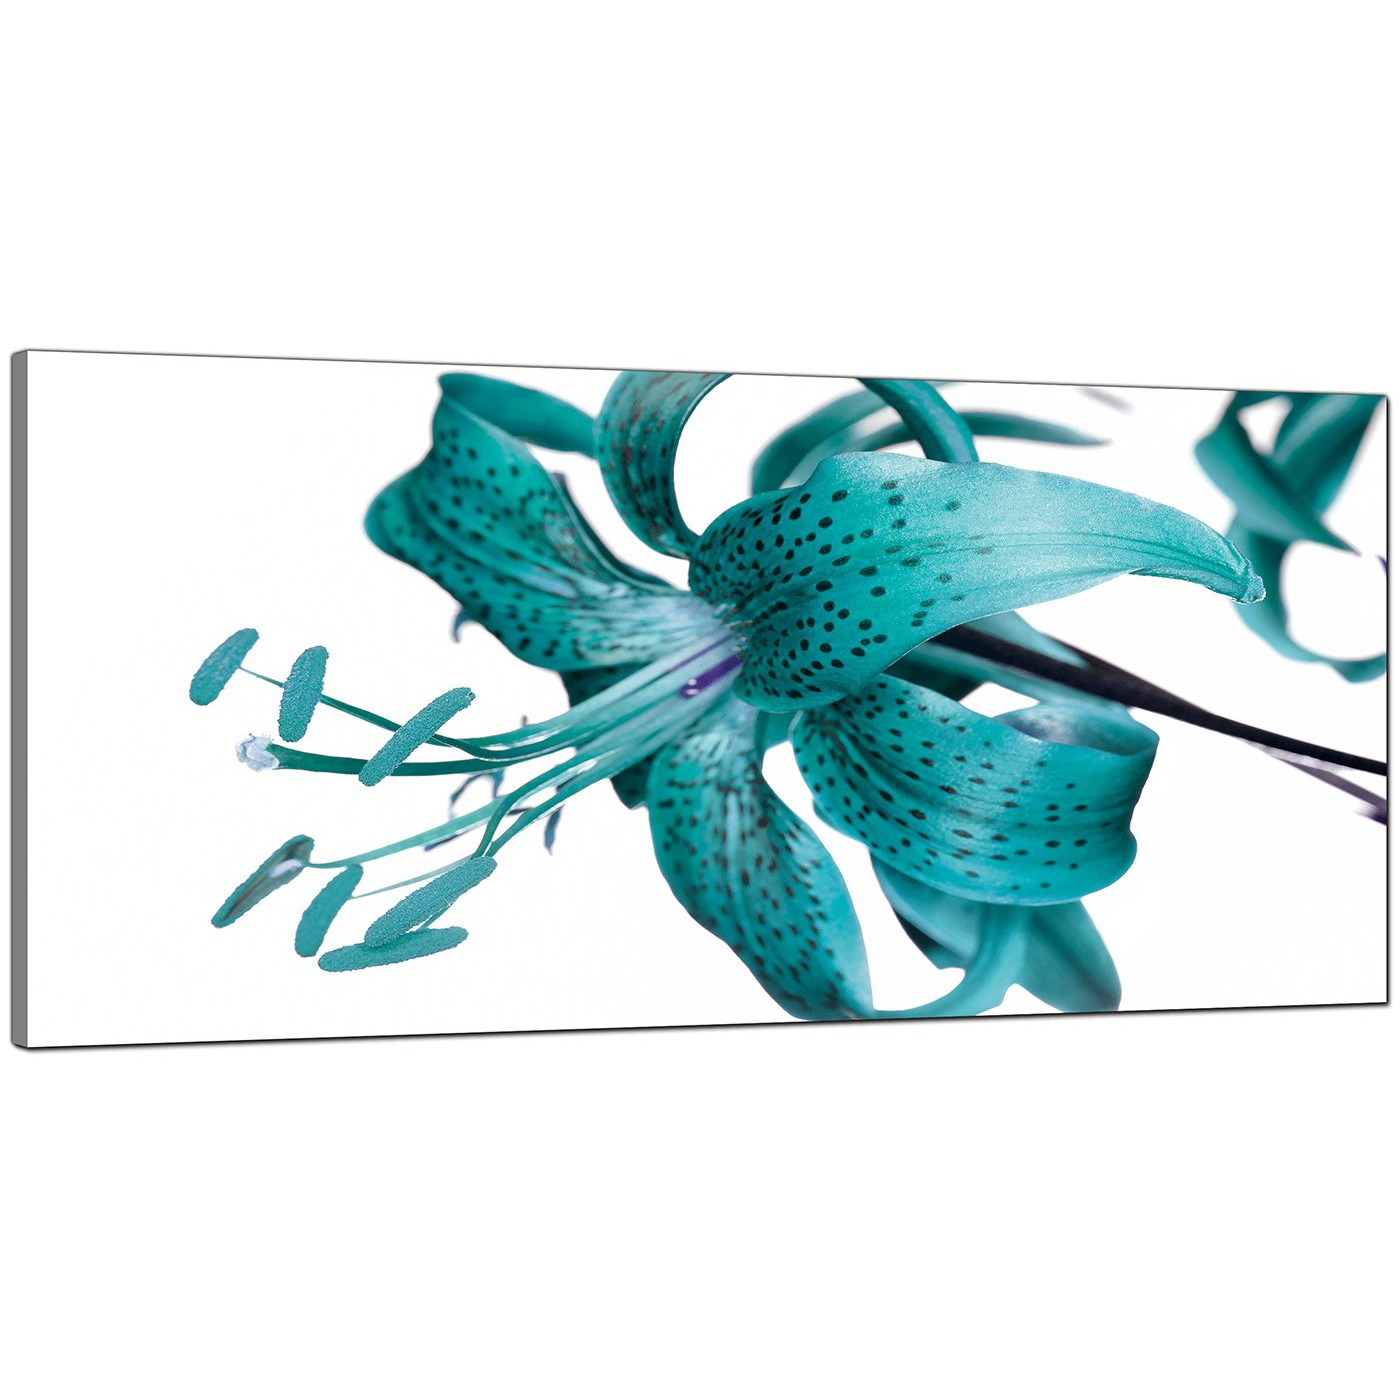 Large teal canvas prints of a tiger lily flower display gallery item 4 teal cheap wide canvas of flowers display gallery item 5 izmirmasajfo